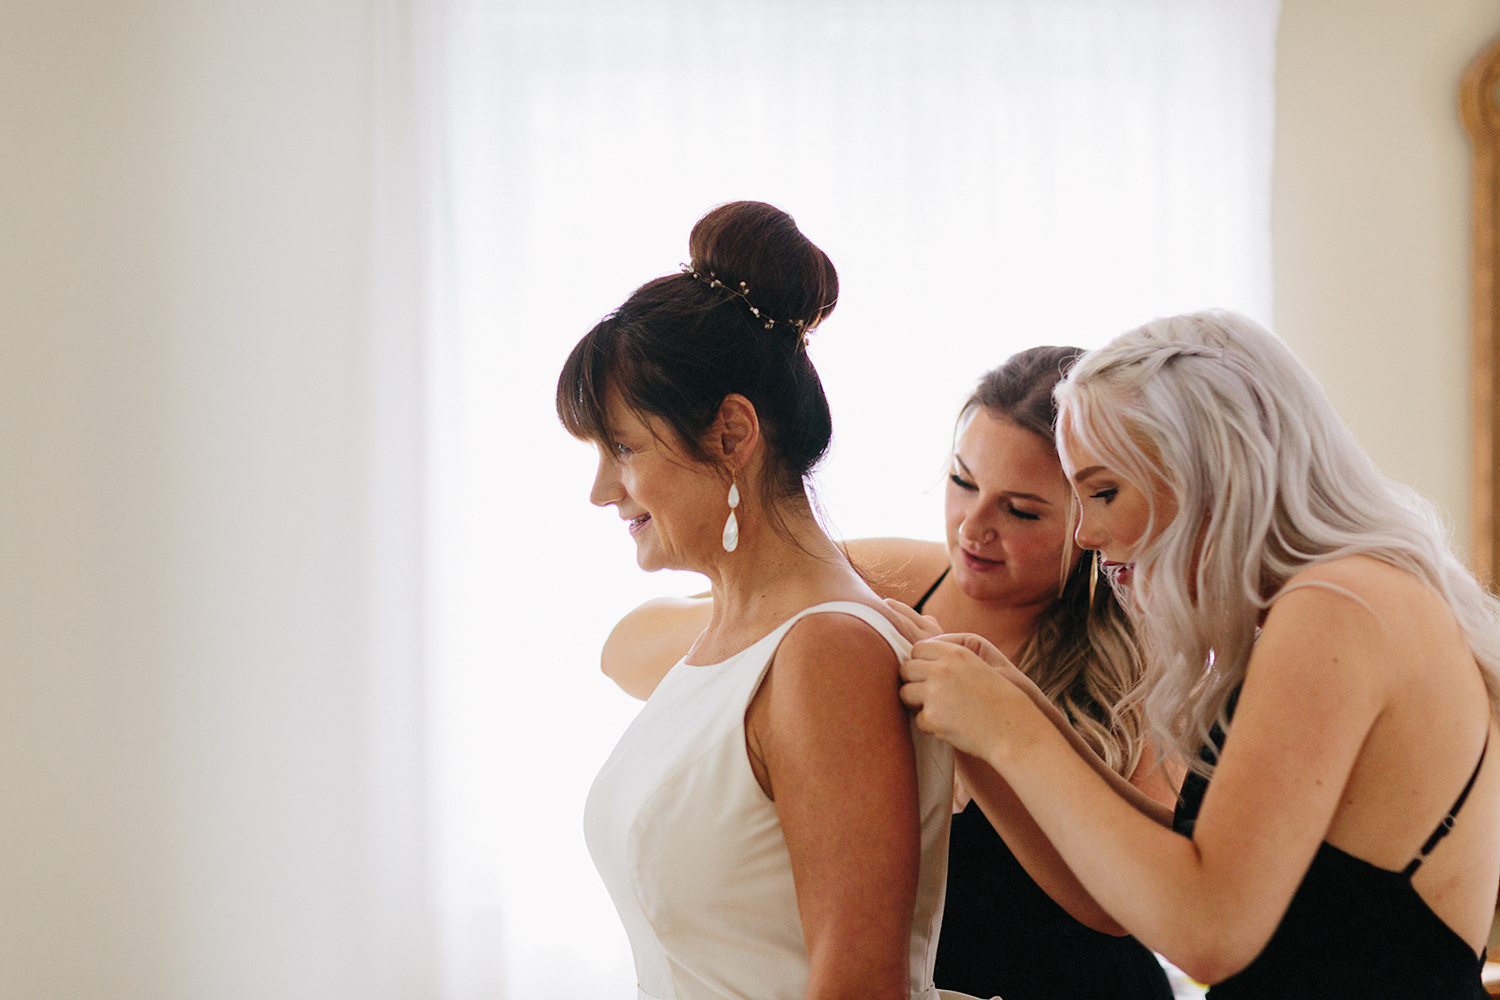 Niagara-on-the-Lake-Wedding-Photographers-Best-in-Toronto-Port-Dalhousie-curling-club-venue-mature-couple-wedding-inspiration-bride-getting-ready-at-childhood-home-wedding-dress-simple-elegant-zipped-up-bridesmaids.jpg